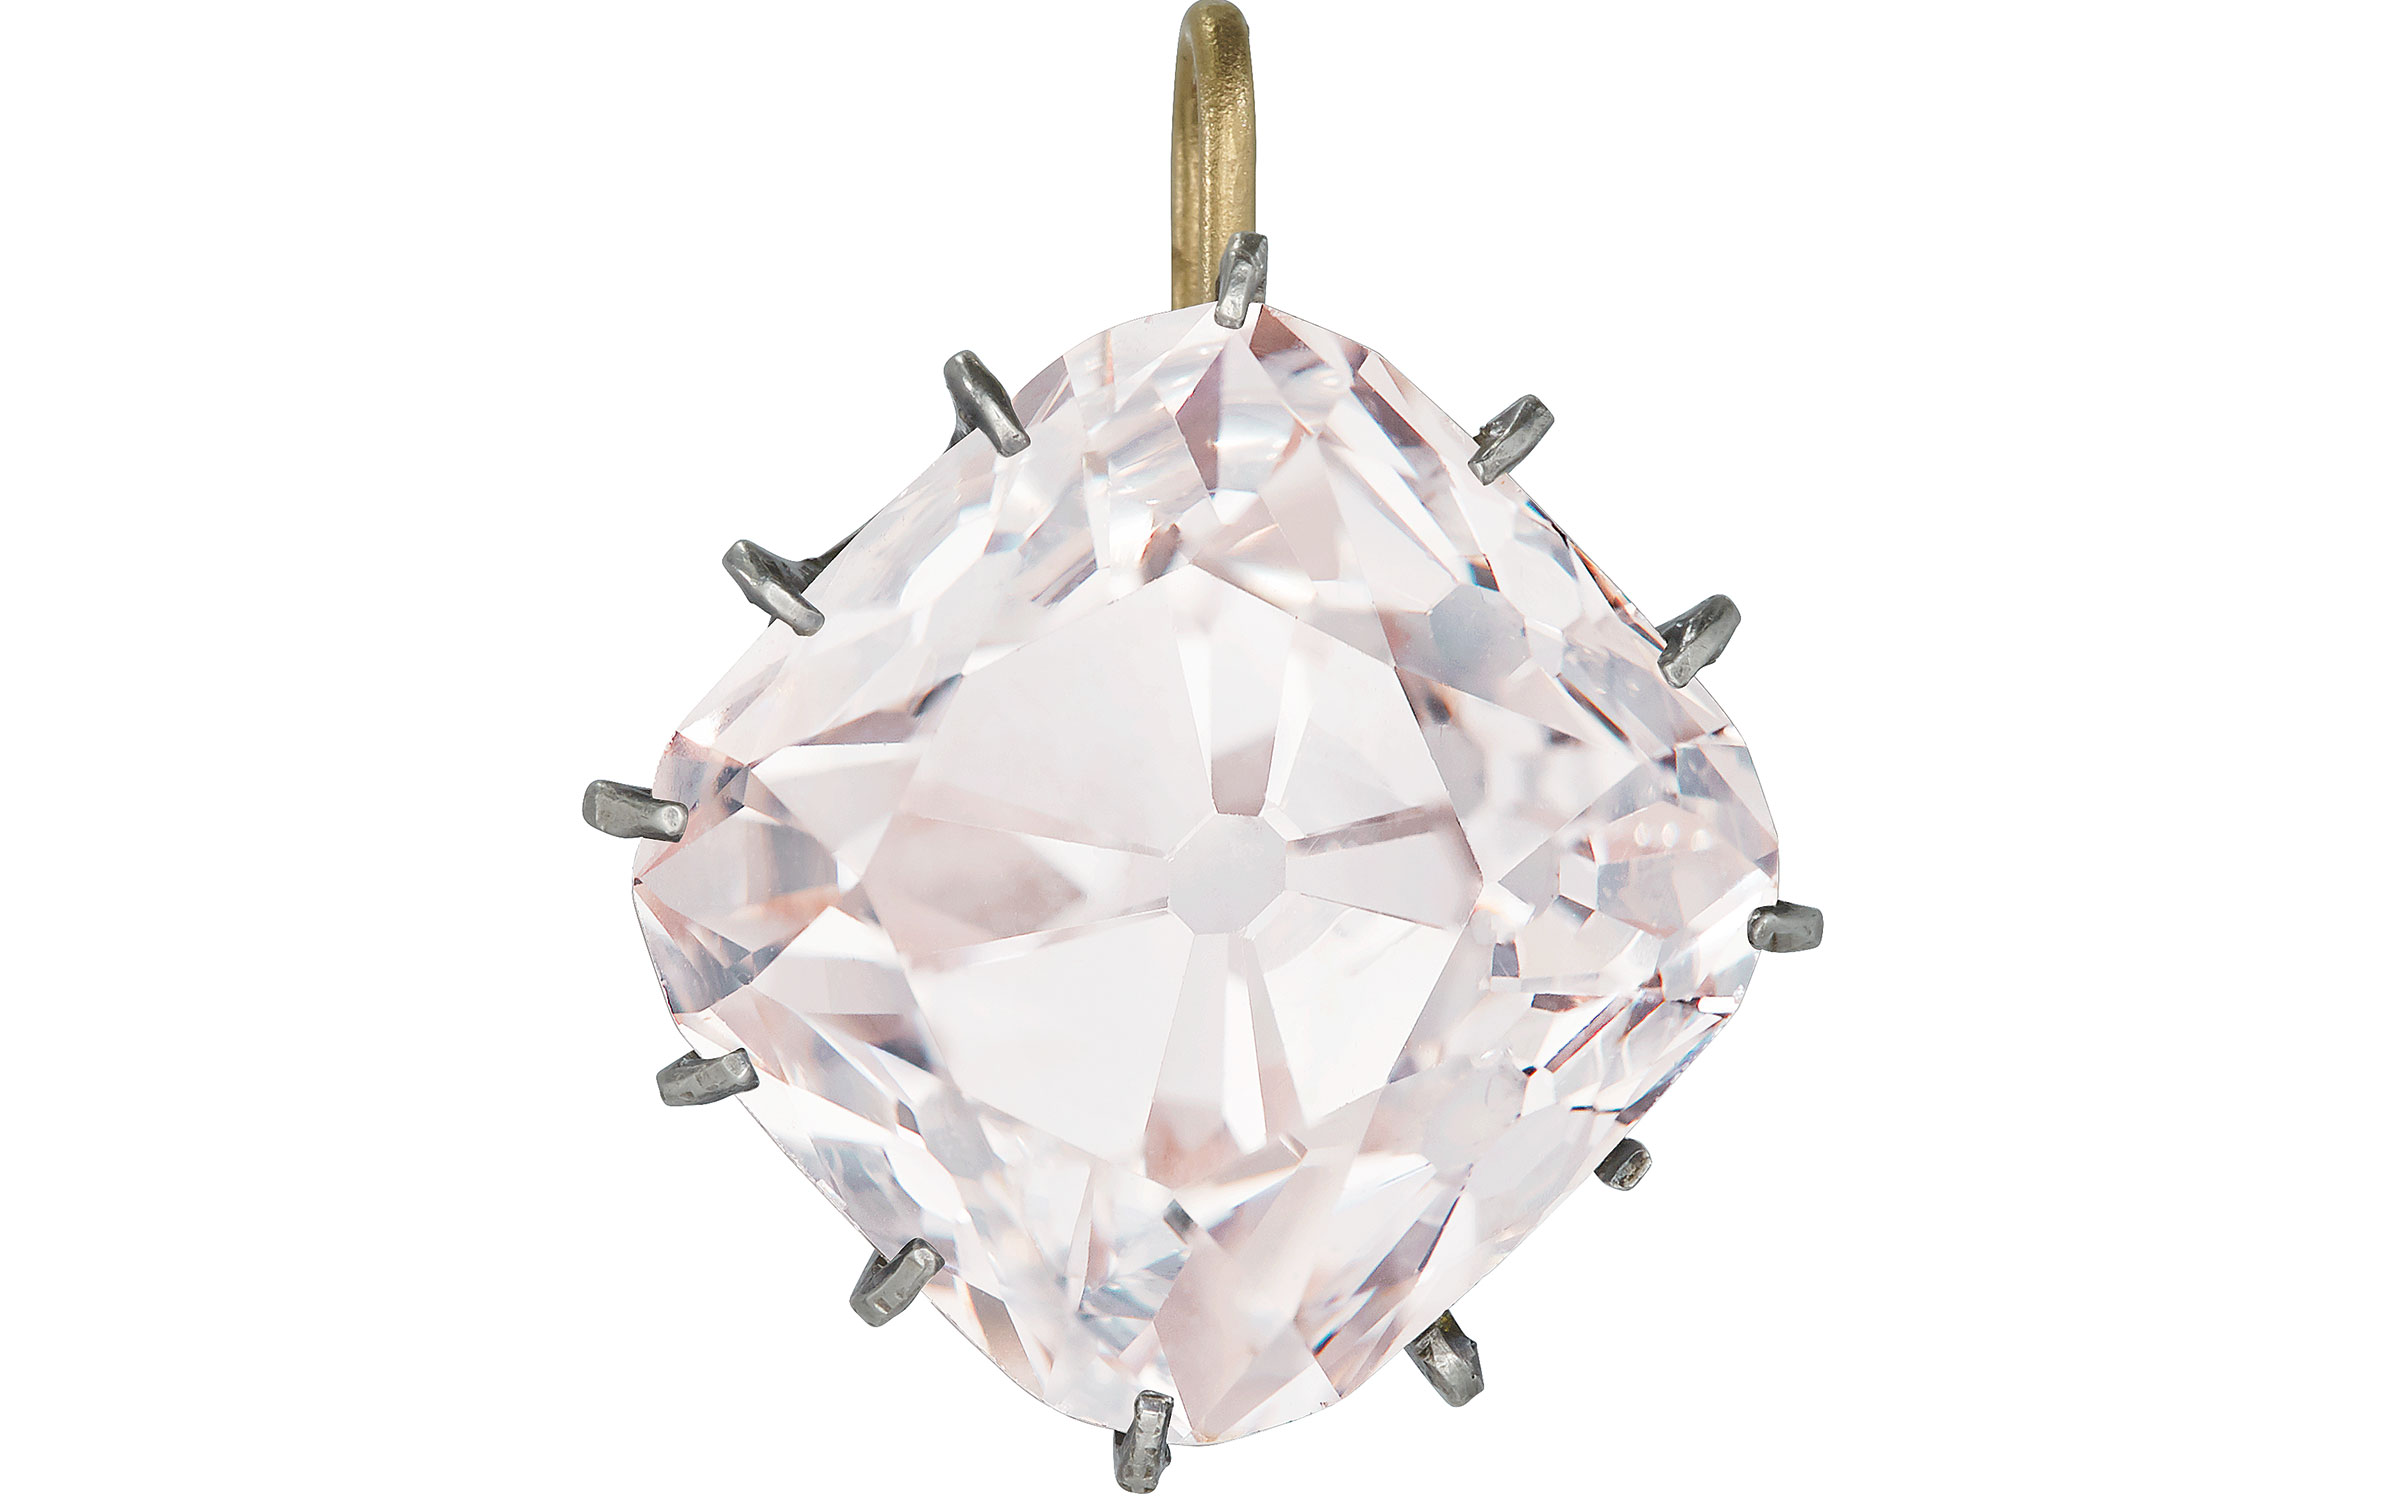 Le Grand Mazarin an historic coloured diamond, accompanied by Report no. 5182785154 dated 4 October 2017 from the GIA Gemological Institute of America stating that the diamond is light pink colour, VS2 clarity, and diamond type classification letter stating that the diamond has been determined to be type IIA. Estimate on request. This lot is offered in Magnificent Jewels on 14 November 2017  at